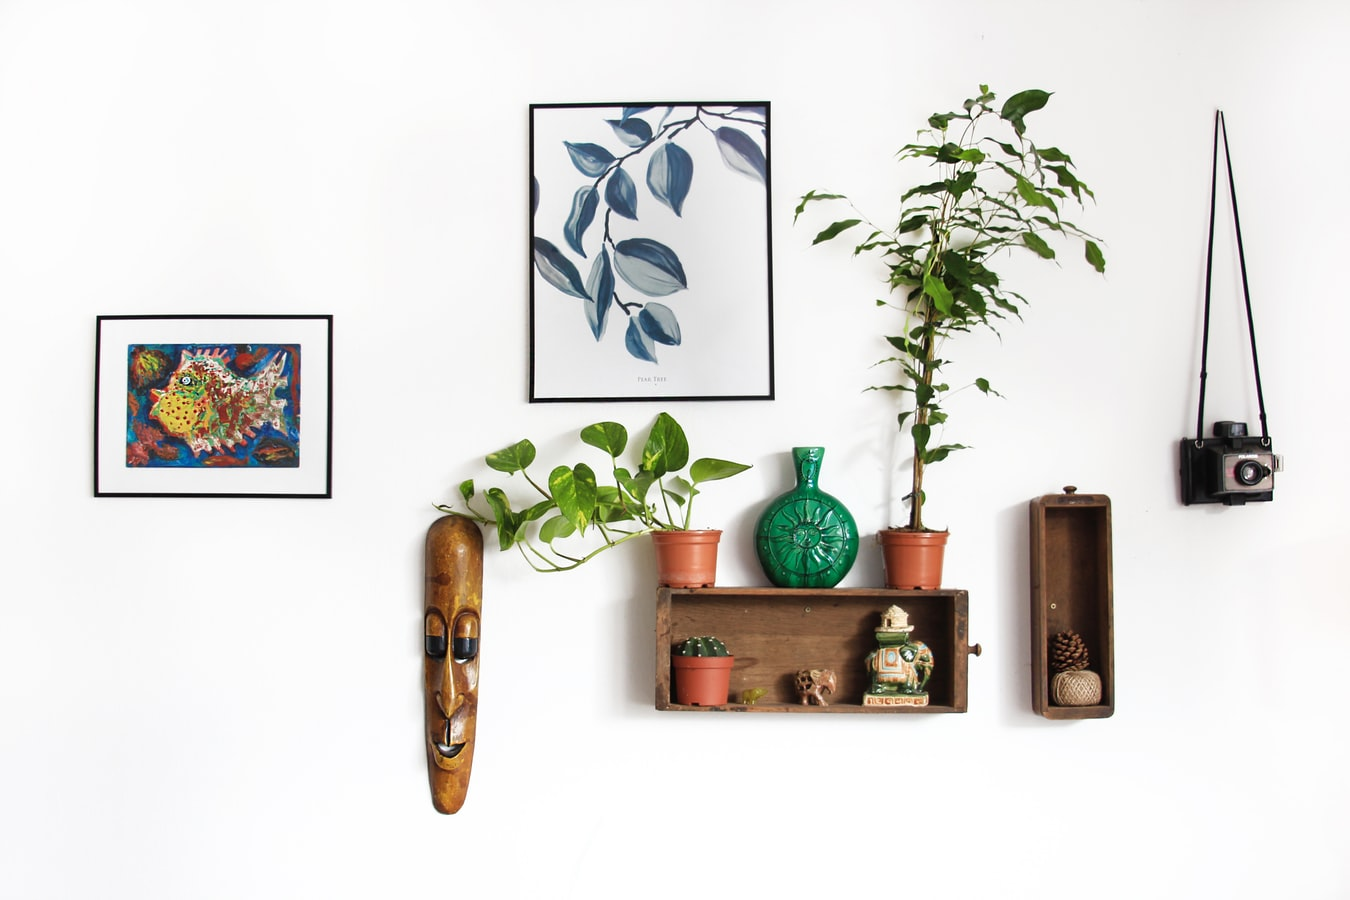 Wood, leather and houseplants will make your home feel cozier. Source: Unsplash